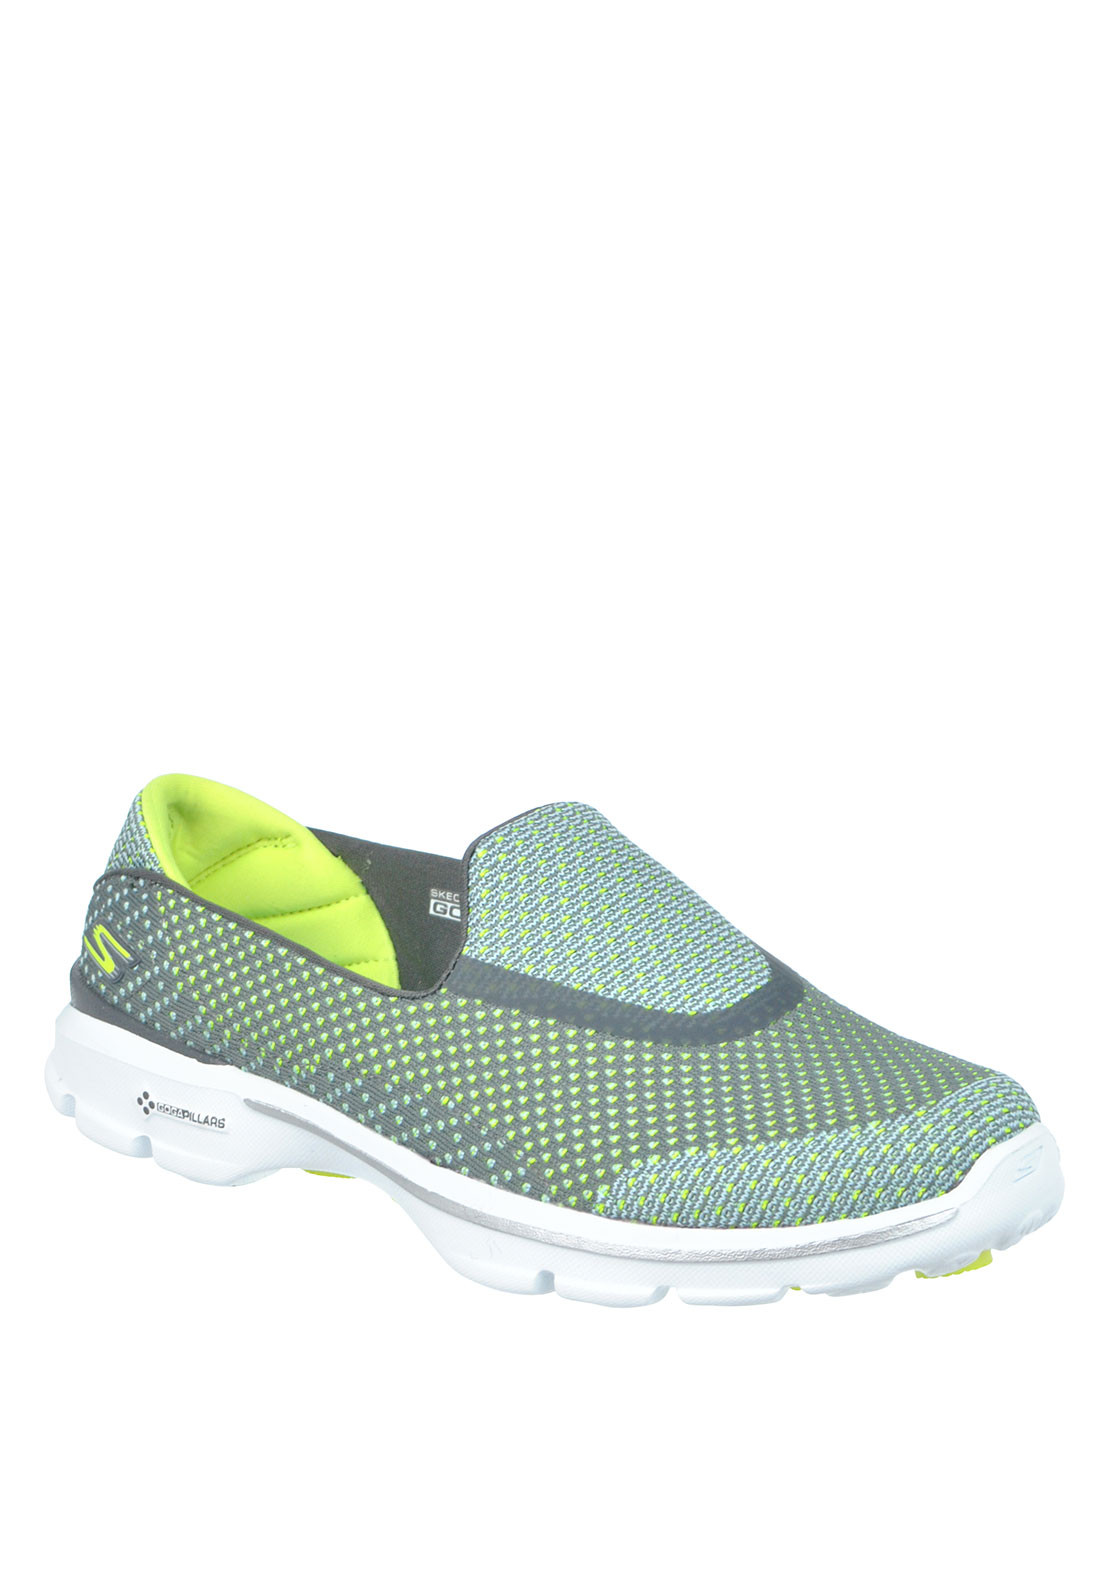 Skechers Womens Go Walk 3 Slip On Trainers, Grey and Green